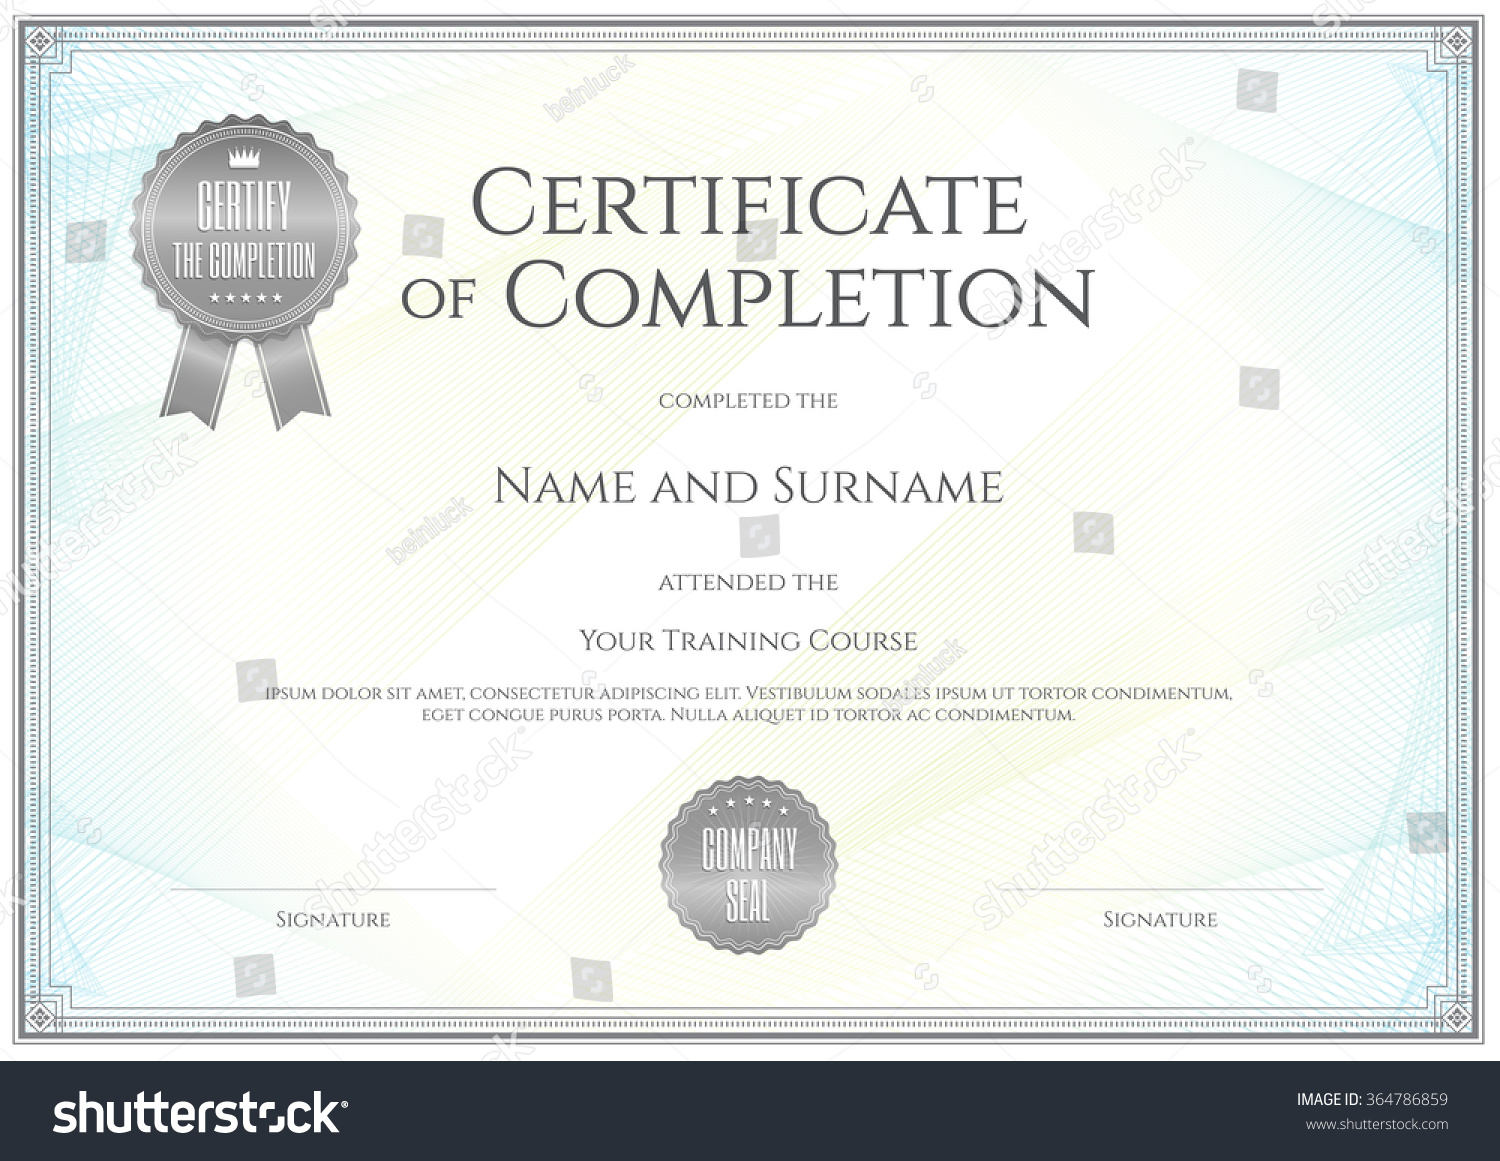 Certificate template vector achievement graduation completion certificate template in vector for achievement graduation completion xflitez Gallery